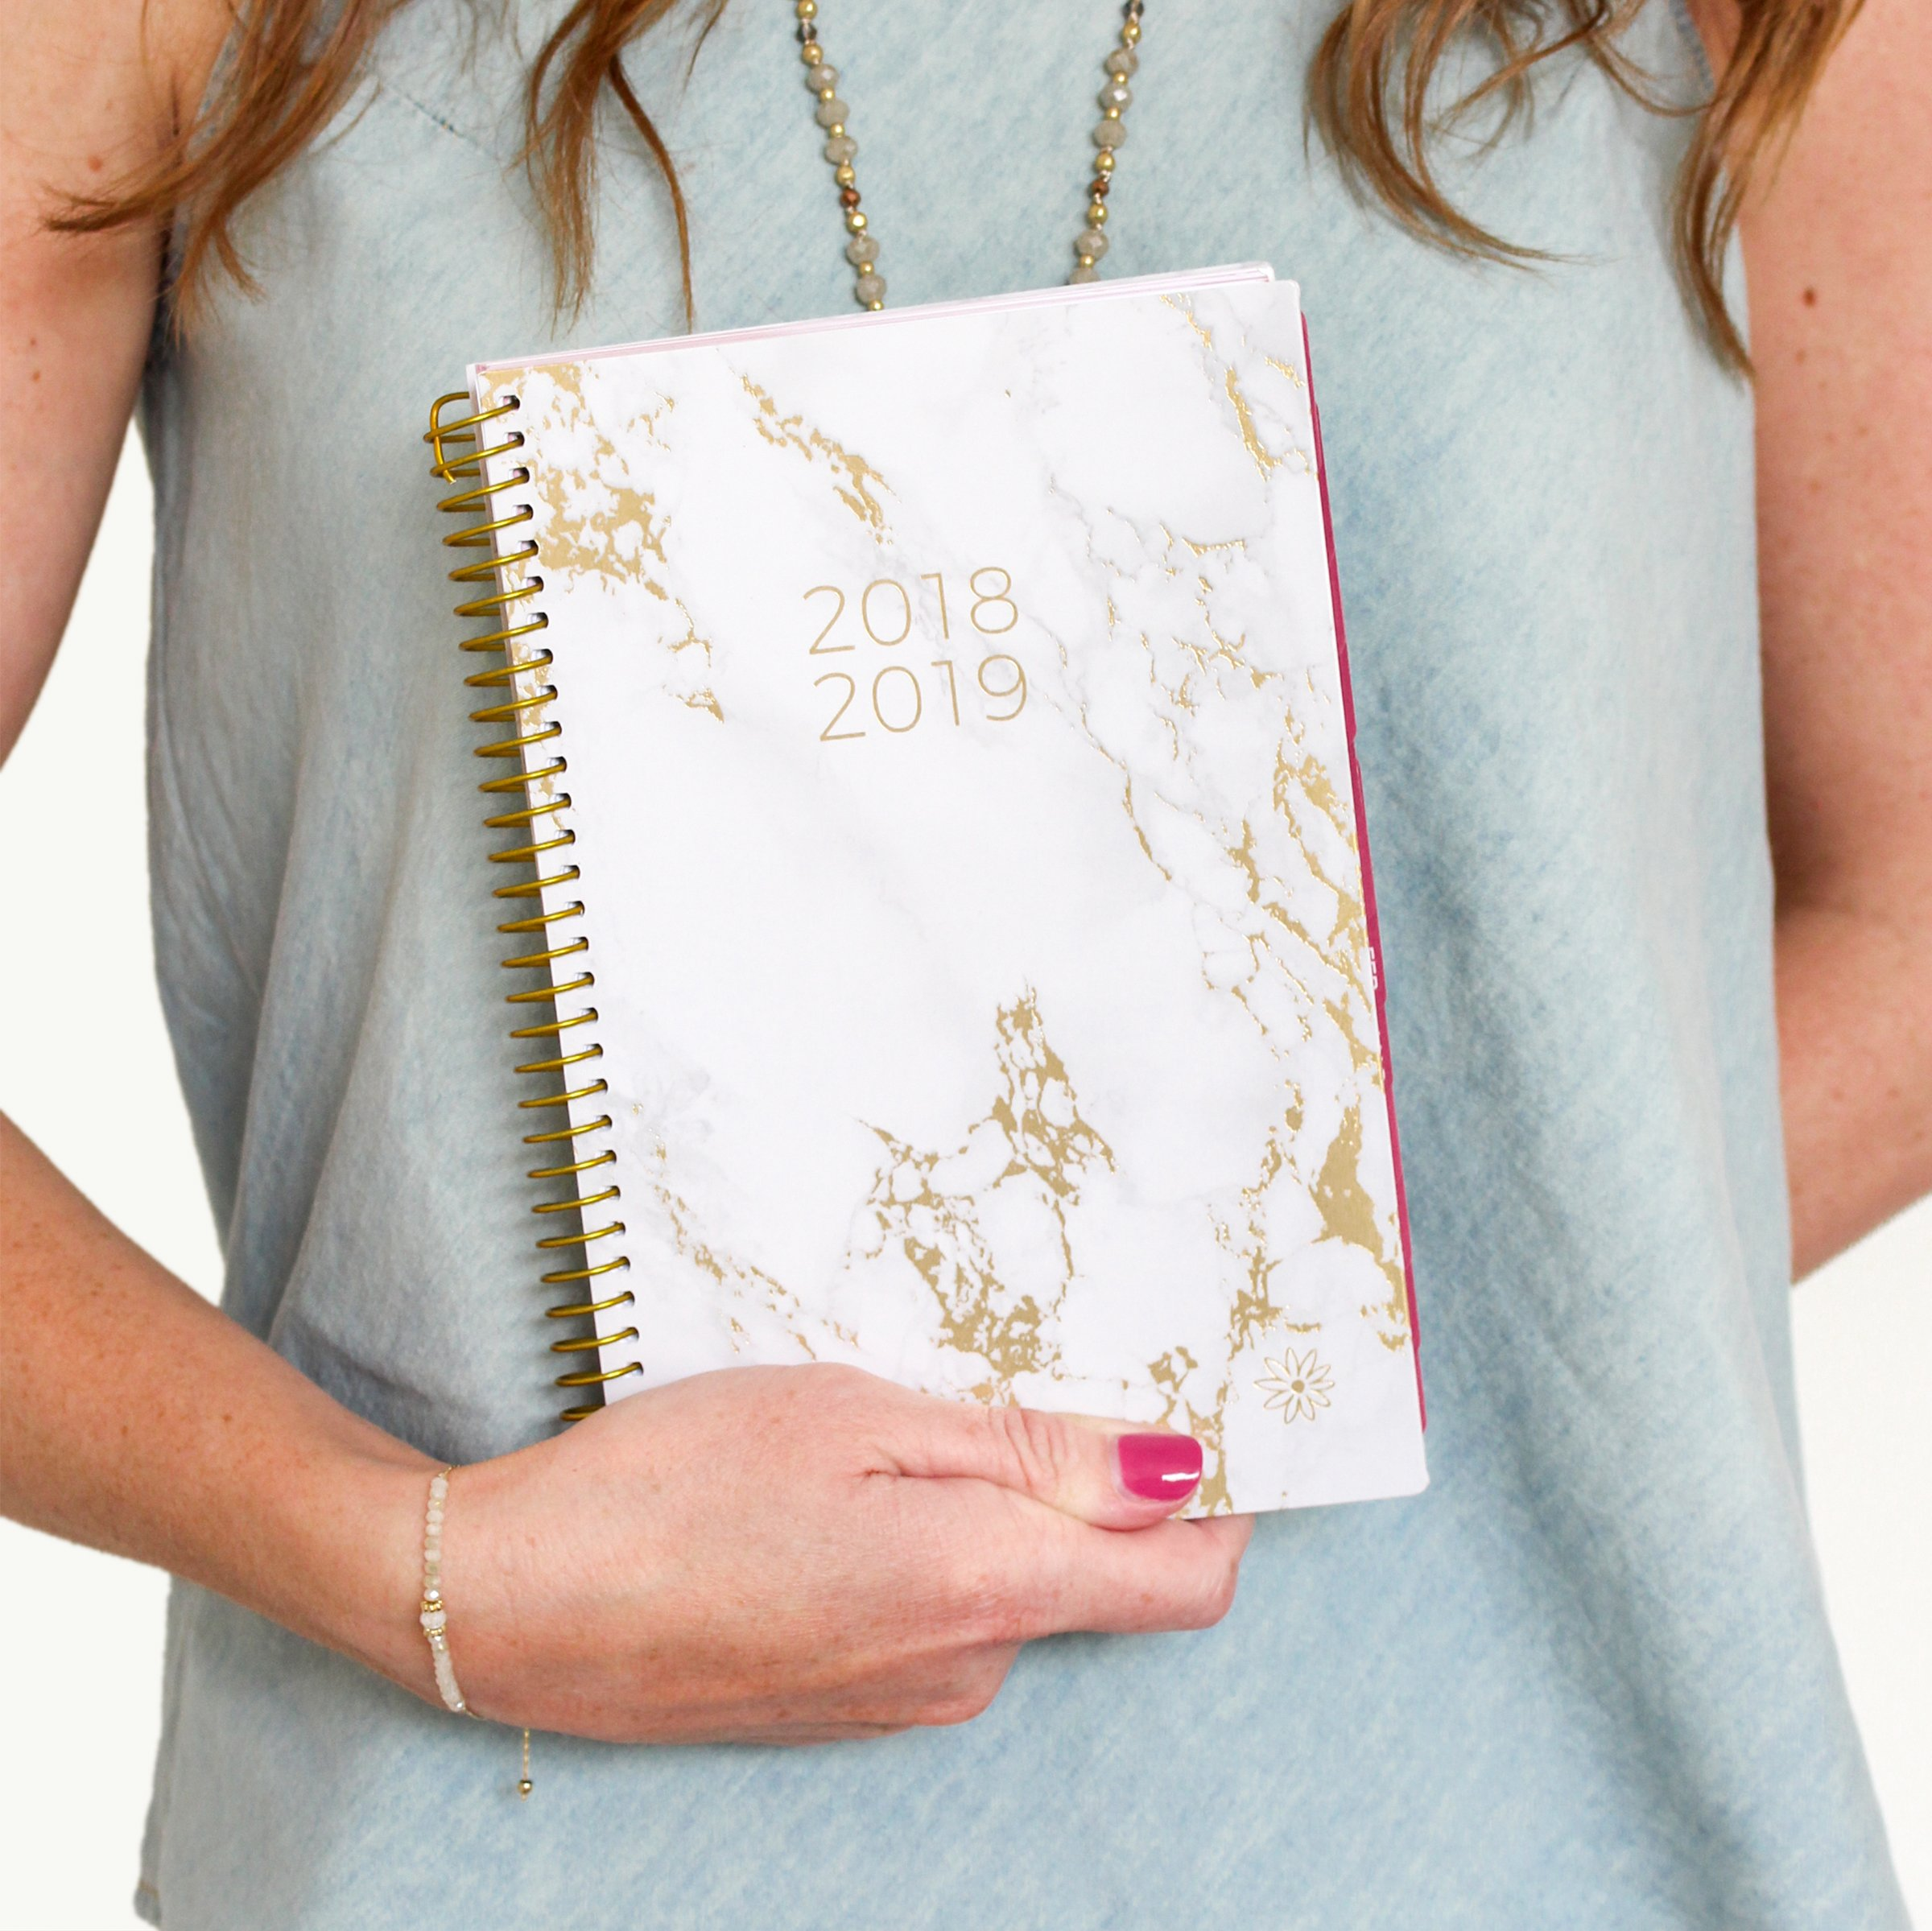 bloom daily planners 2018-2019 Academic Year Day Planner - Monthly and Weekly Calendar Book - Inspirational Dated Agenda Organizer - (August 2018 - July 2019) - 6'' x 8.25'' - Marble by bloom daily planners (Image #2)